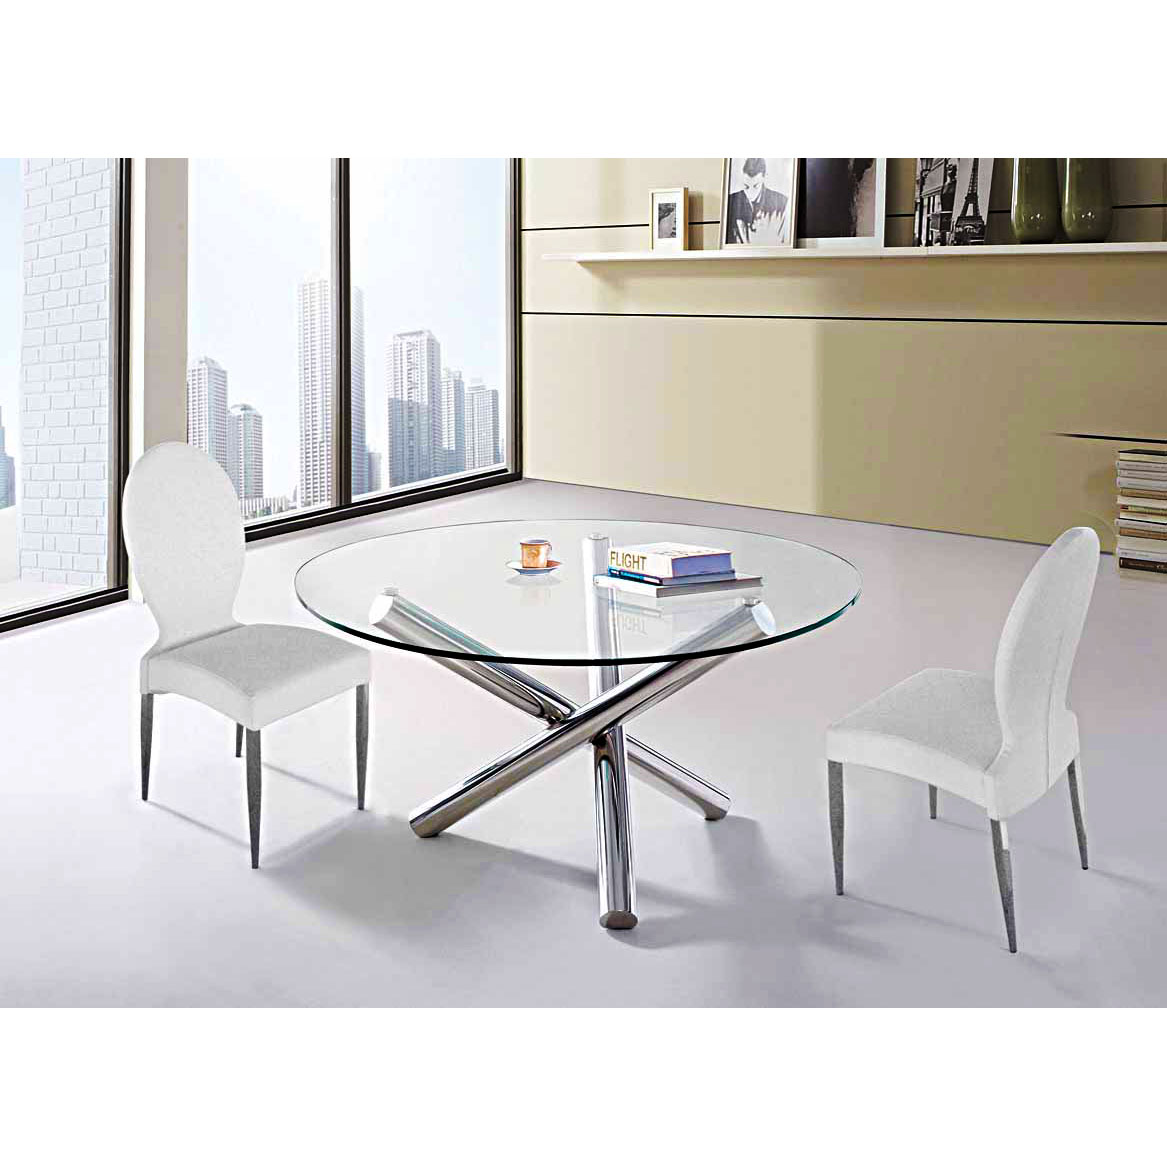 Cannes Dining Table Laurel Foundry Modern Farmhouse  : cannes dining table room from artofarchitect.com size 1167 x 1167 jpeg 122kB